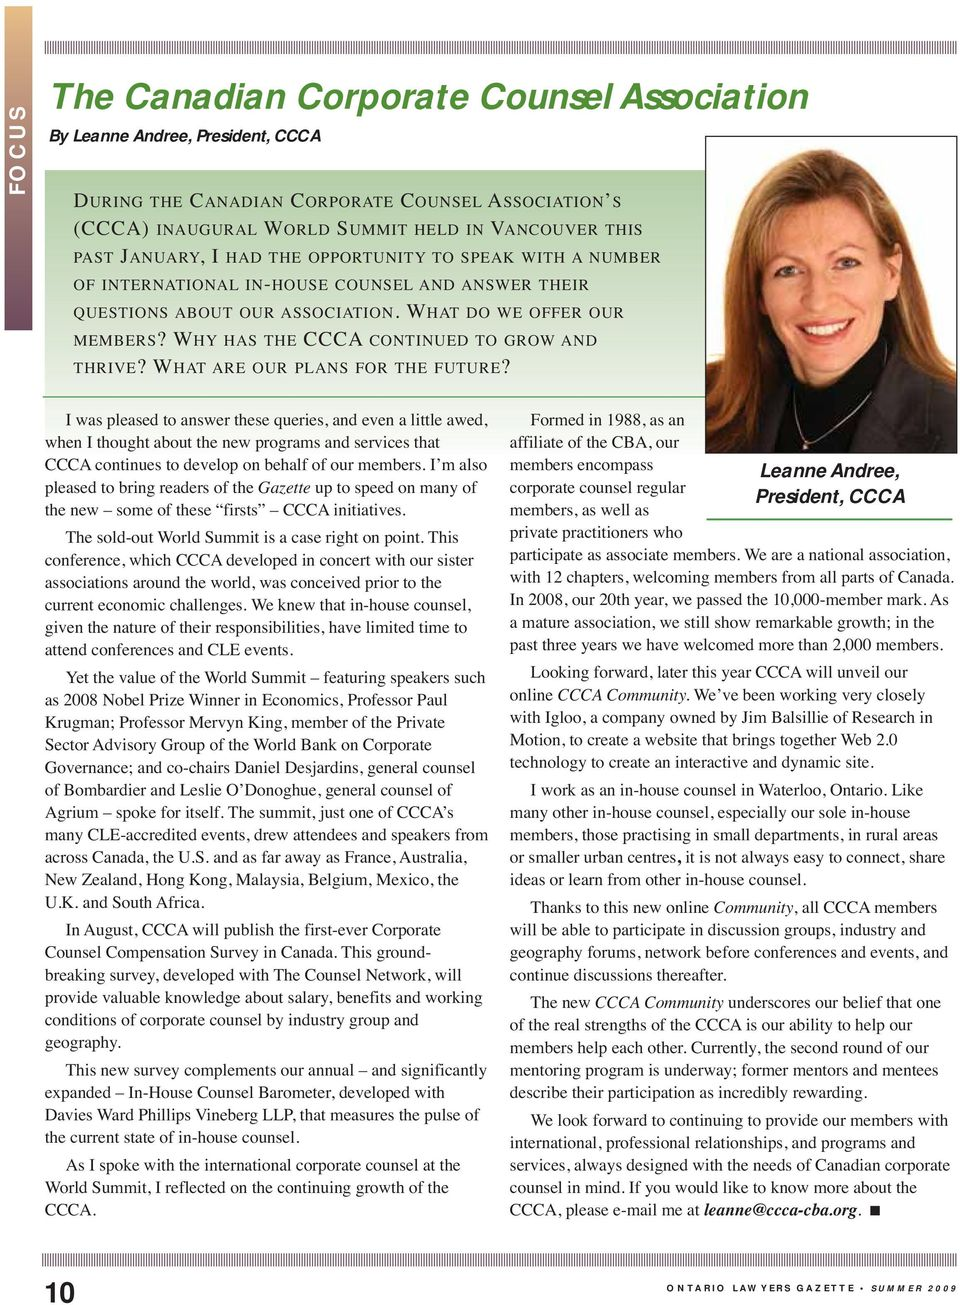 WHY HAS THE CCCA CONTINUED TO GROW AND THRIVE? WHAT ARE OUR PLANS OR THE UTURE?